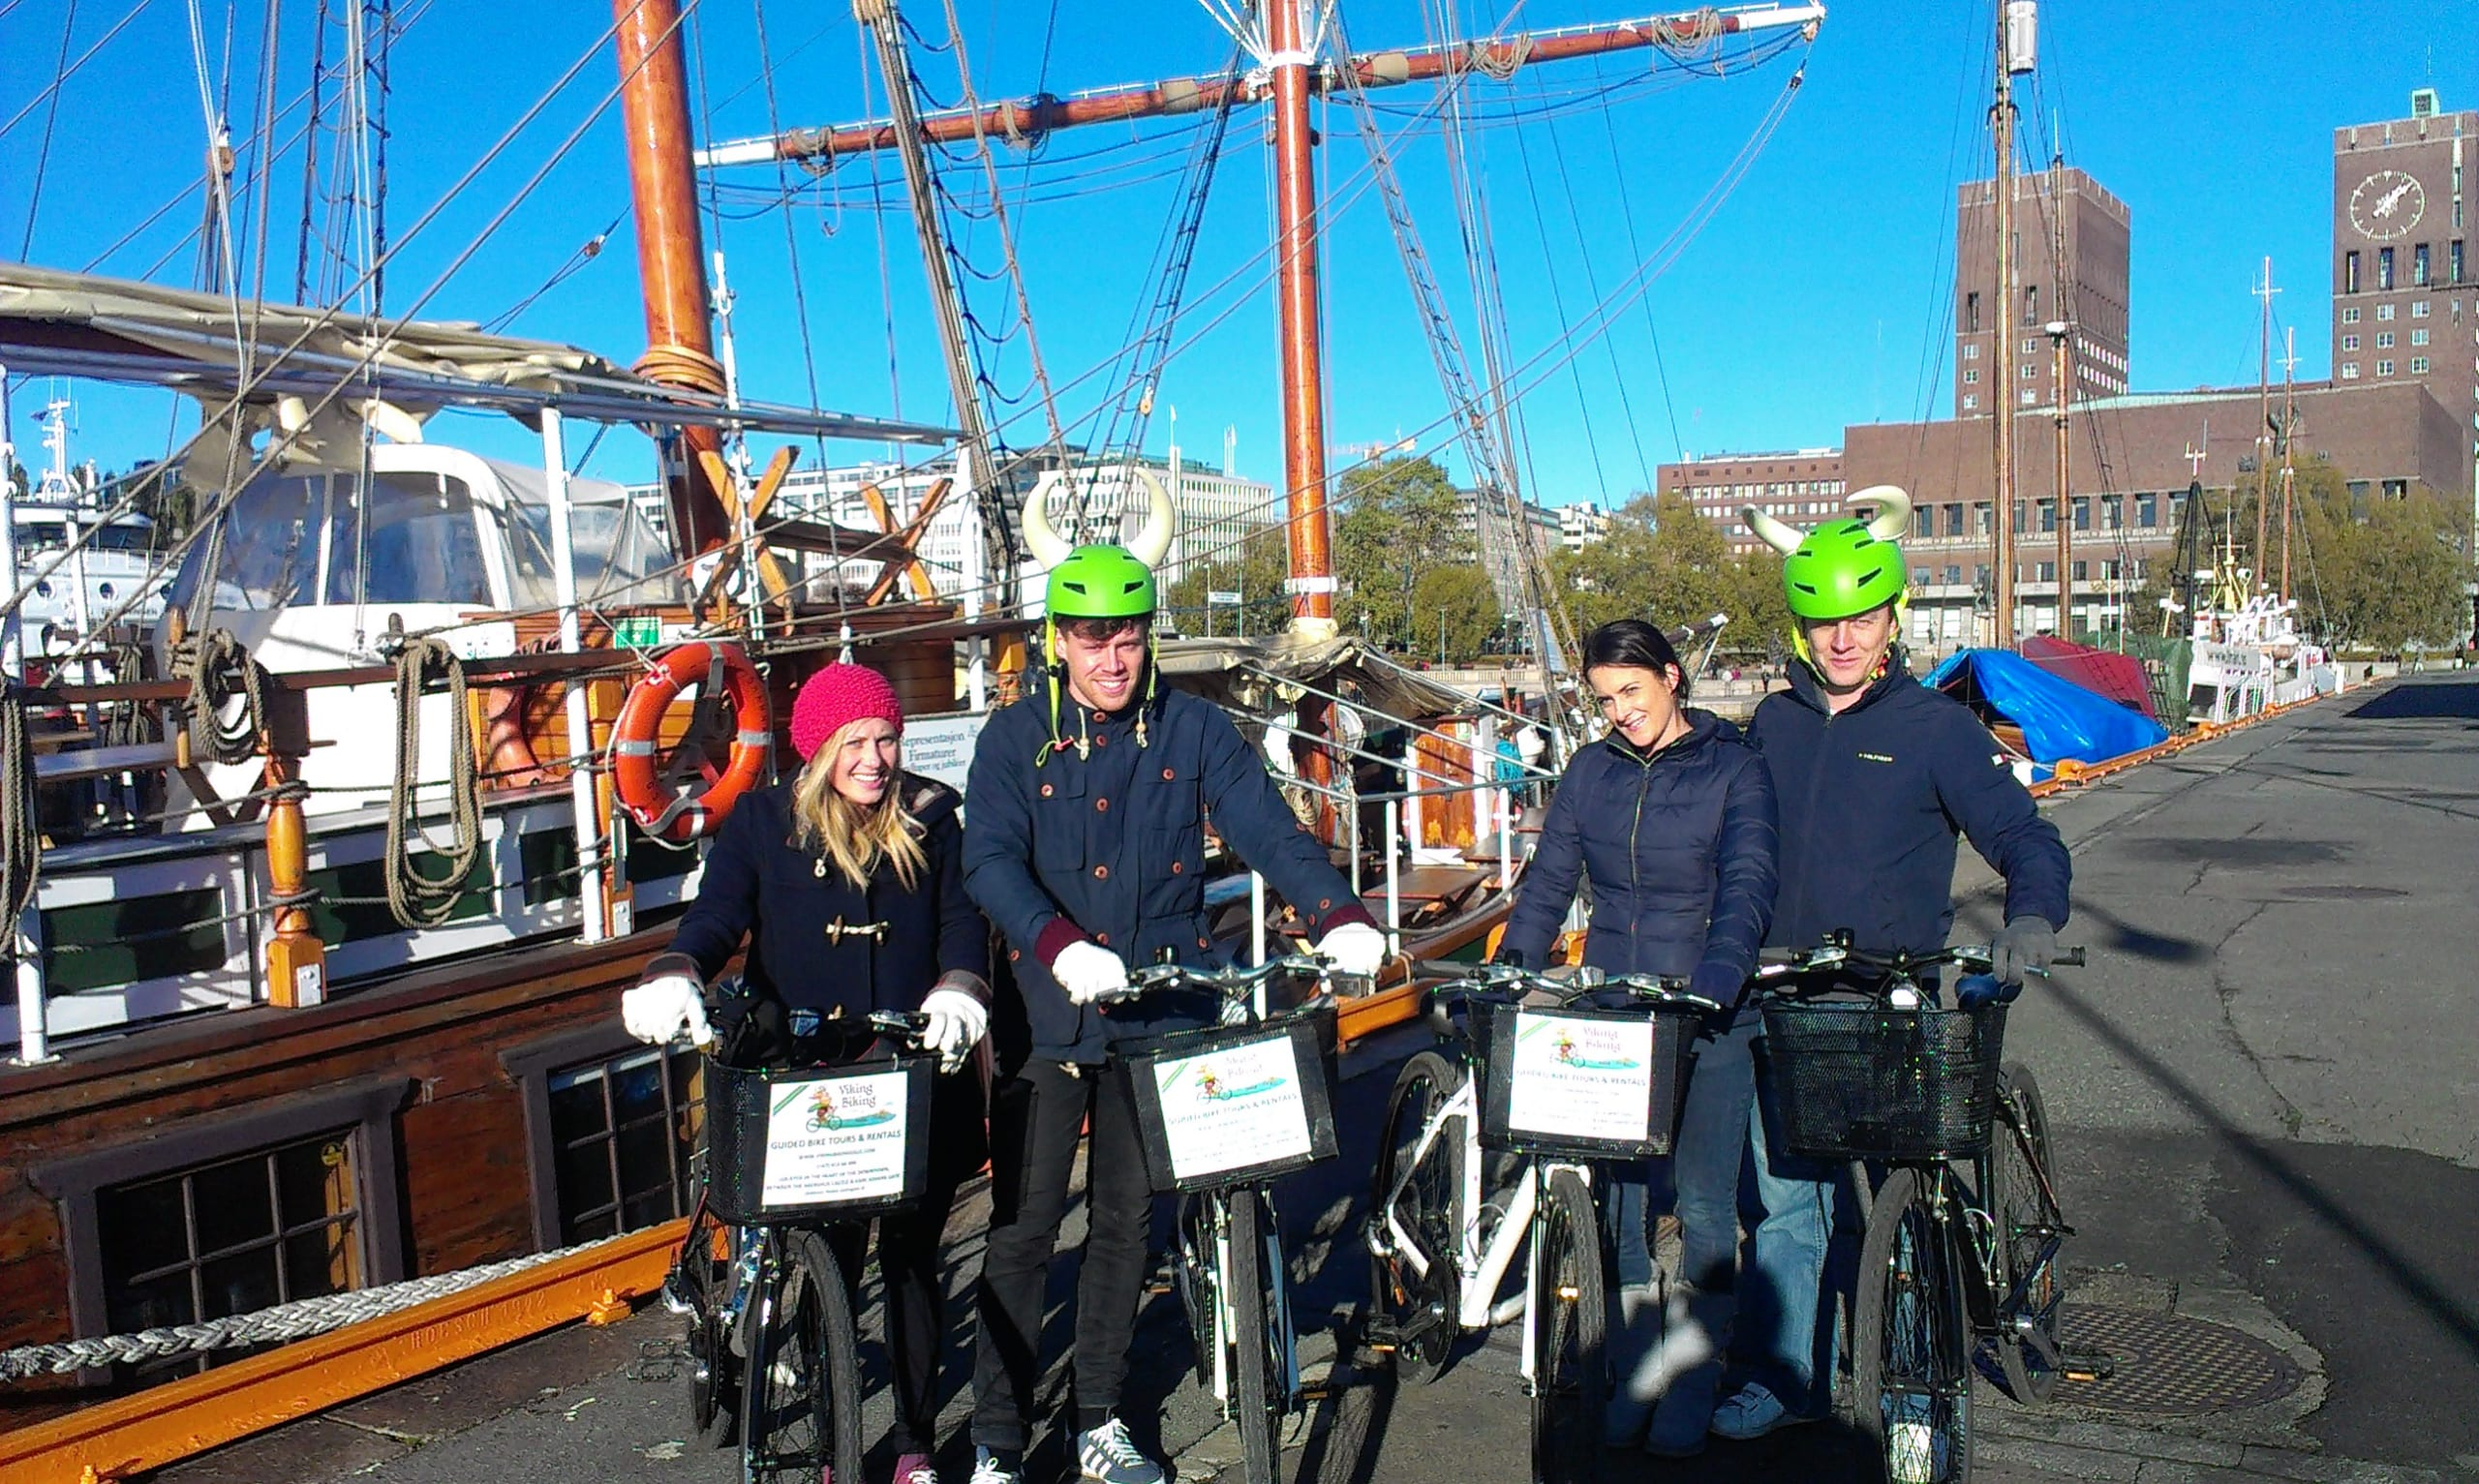 4 smiling tourists standing next to their bikes in the Oslo harbor with a big wooden sail boat featured in the background.